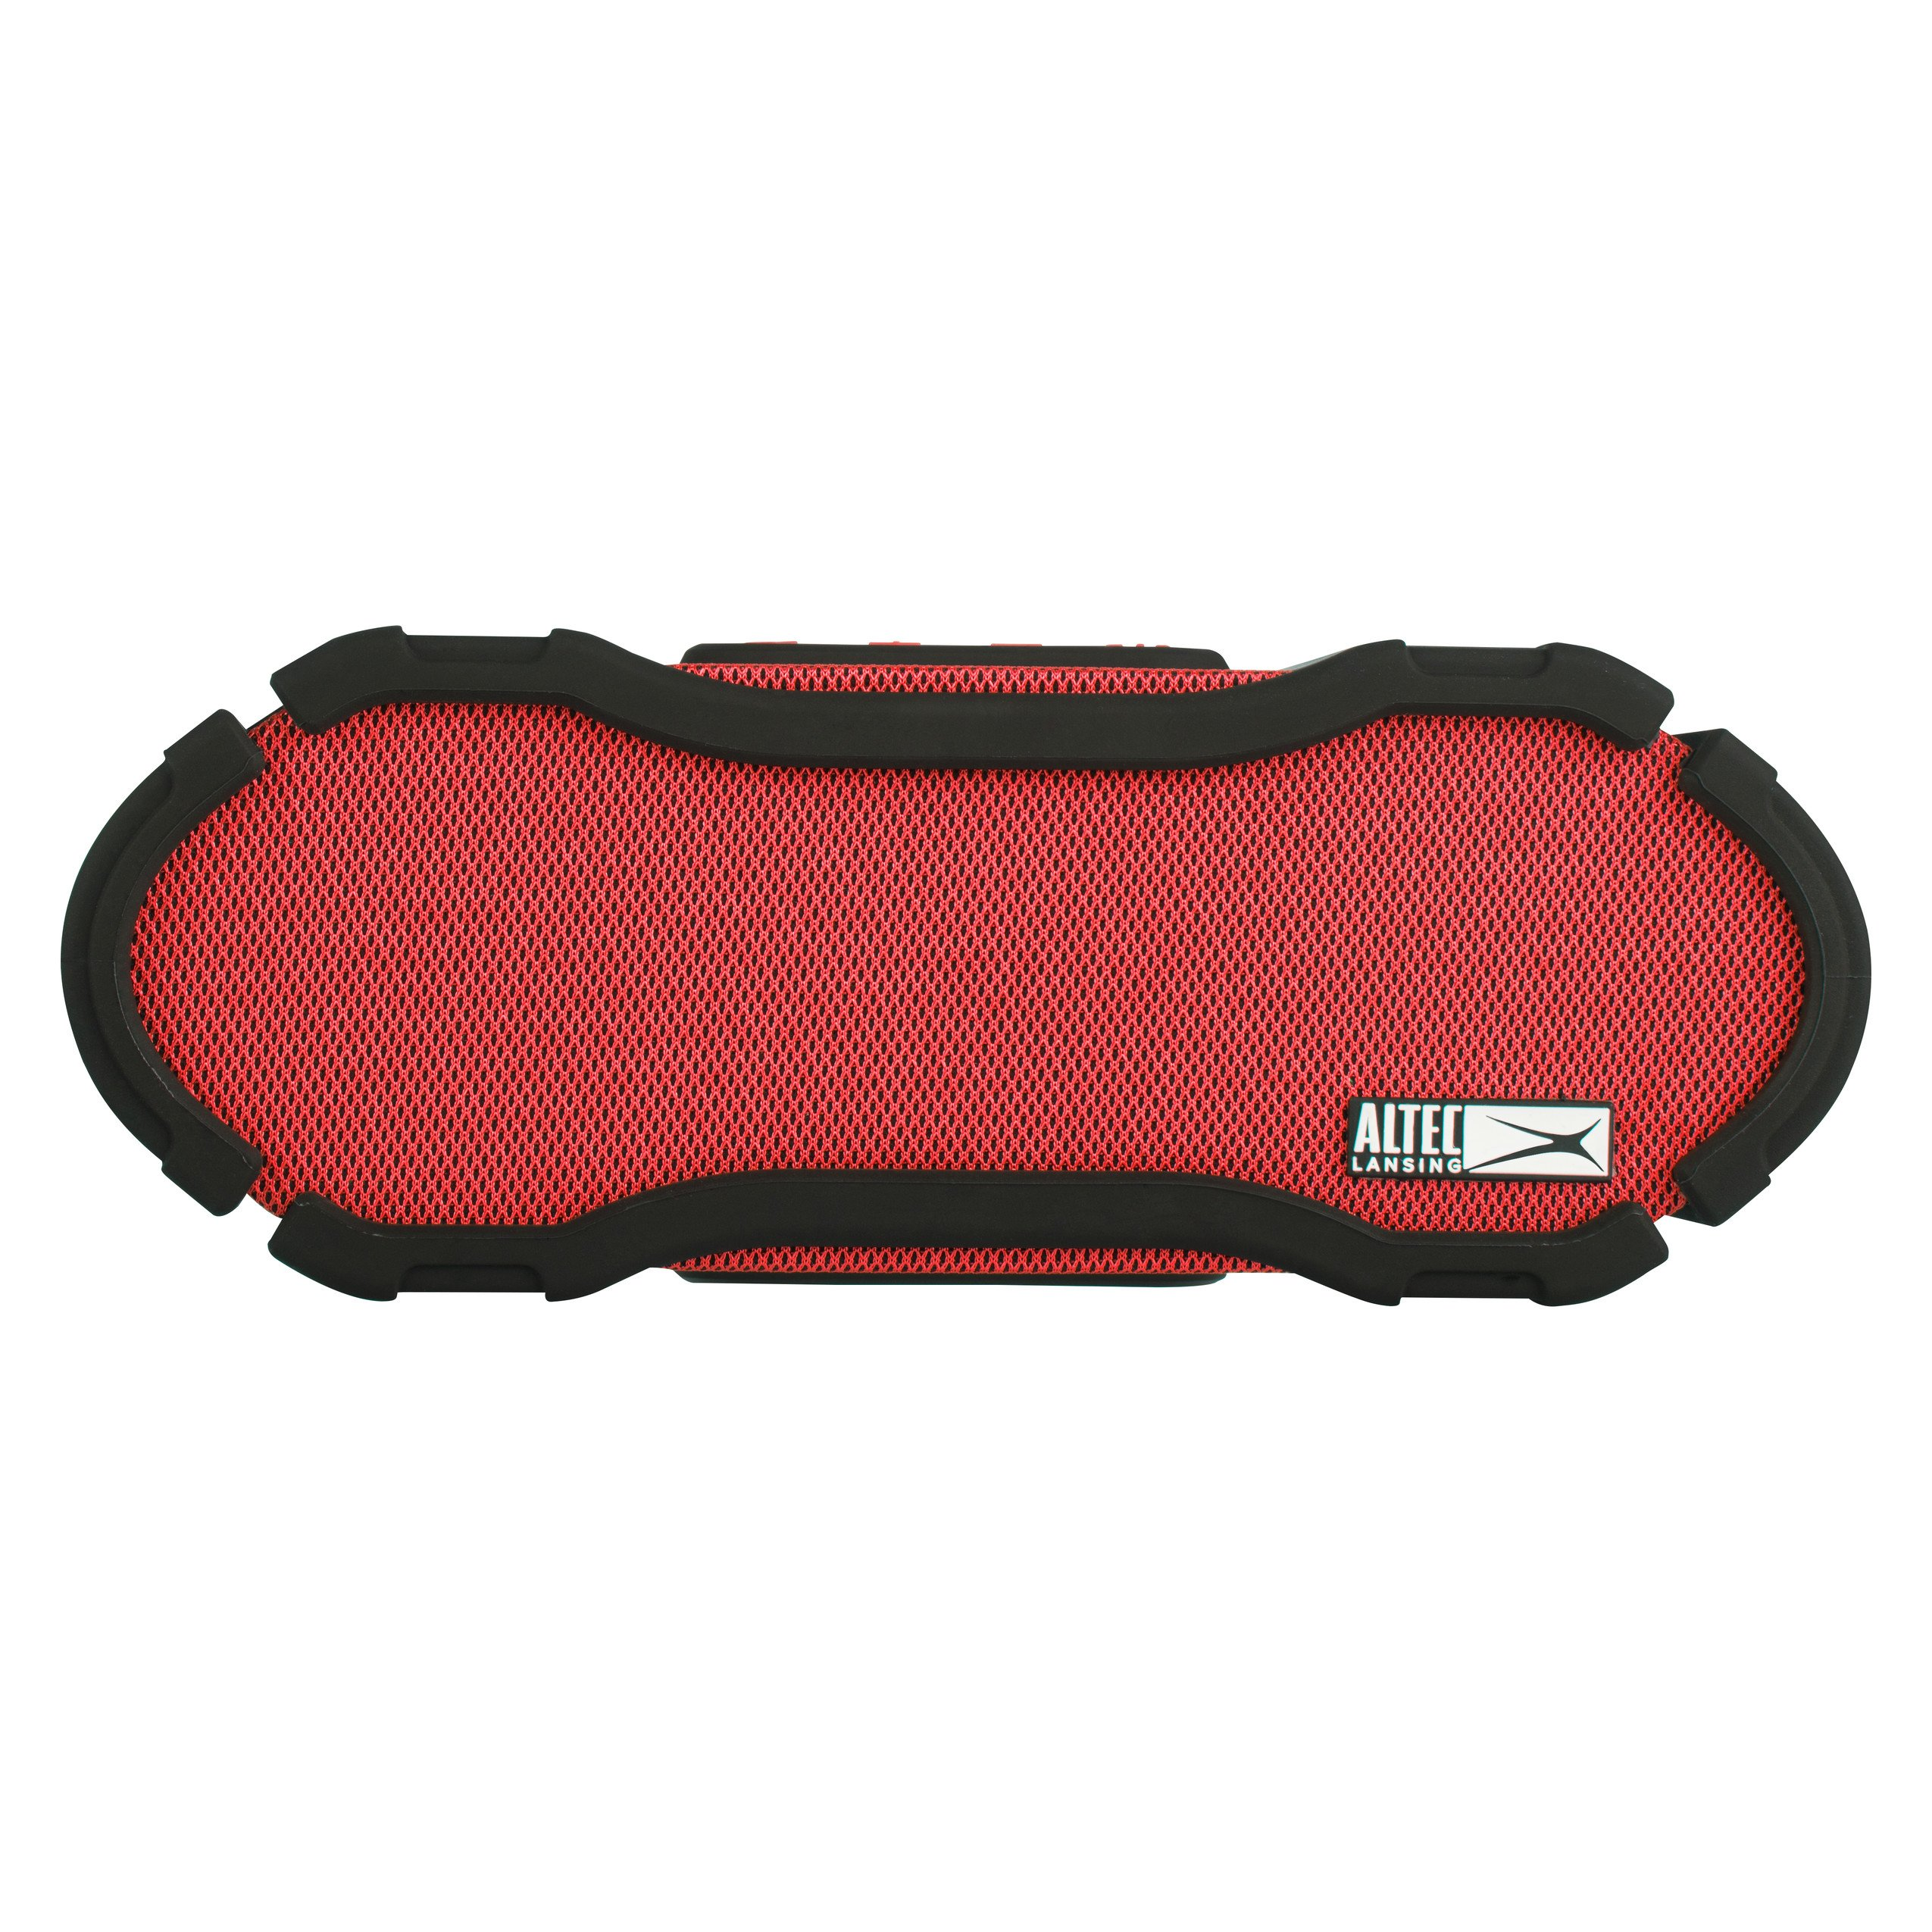 Altec Lansing IMW778-RED Omni Ultra Jacket Bluetooth Waterproof Speaker, Red